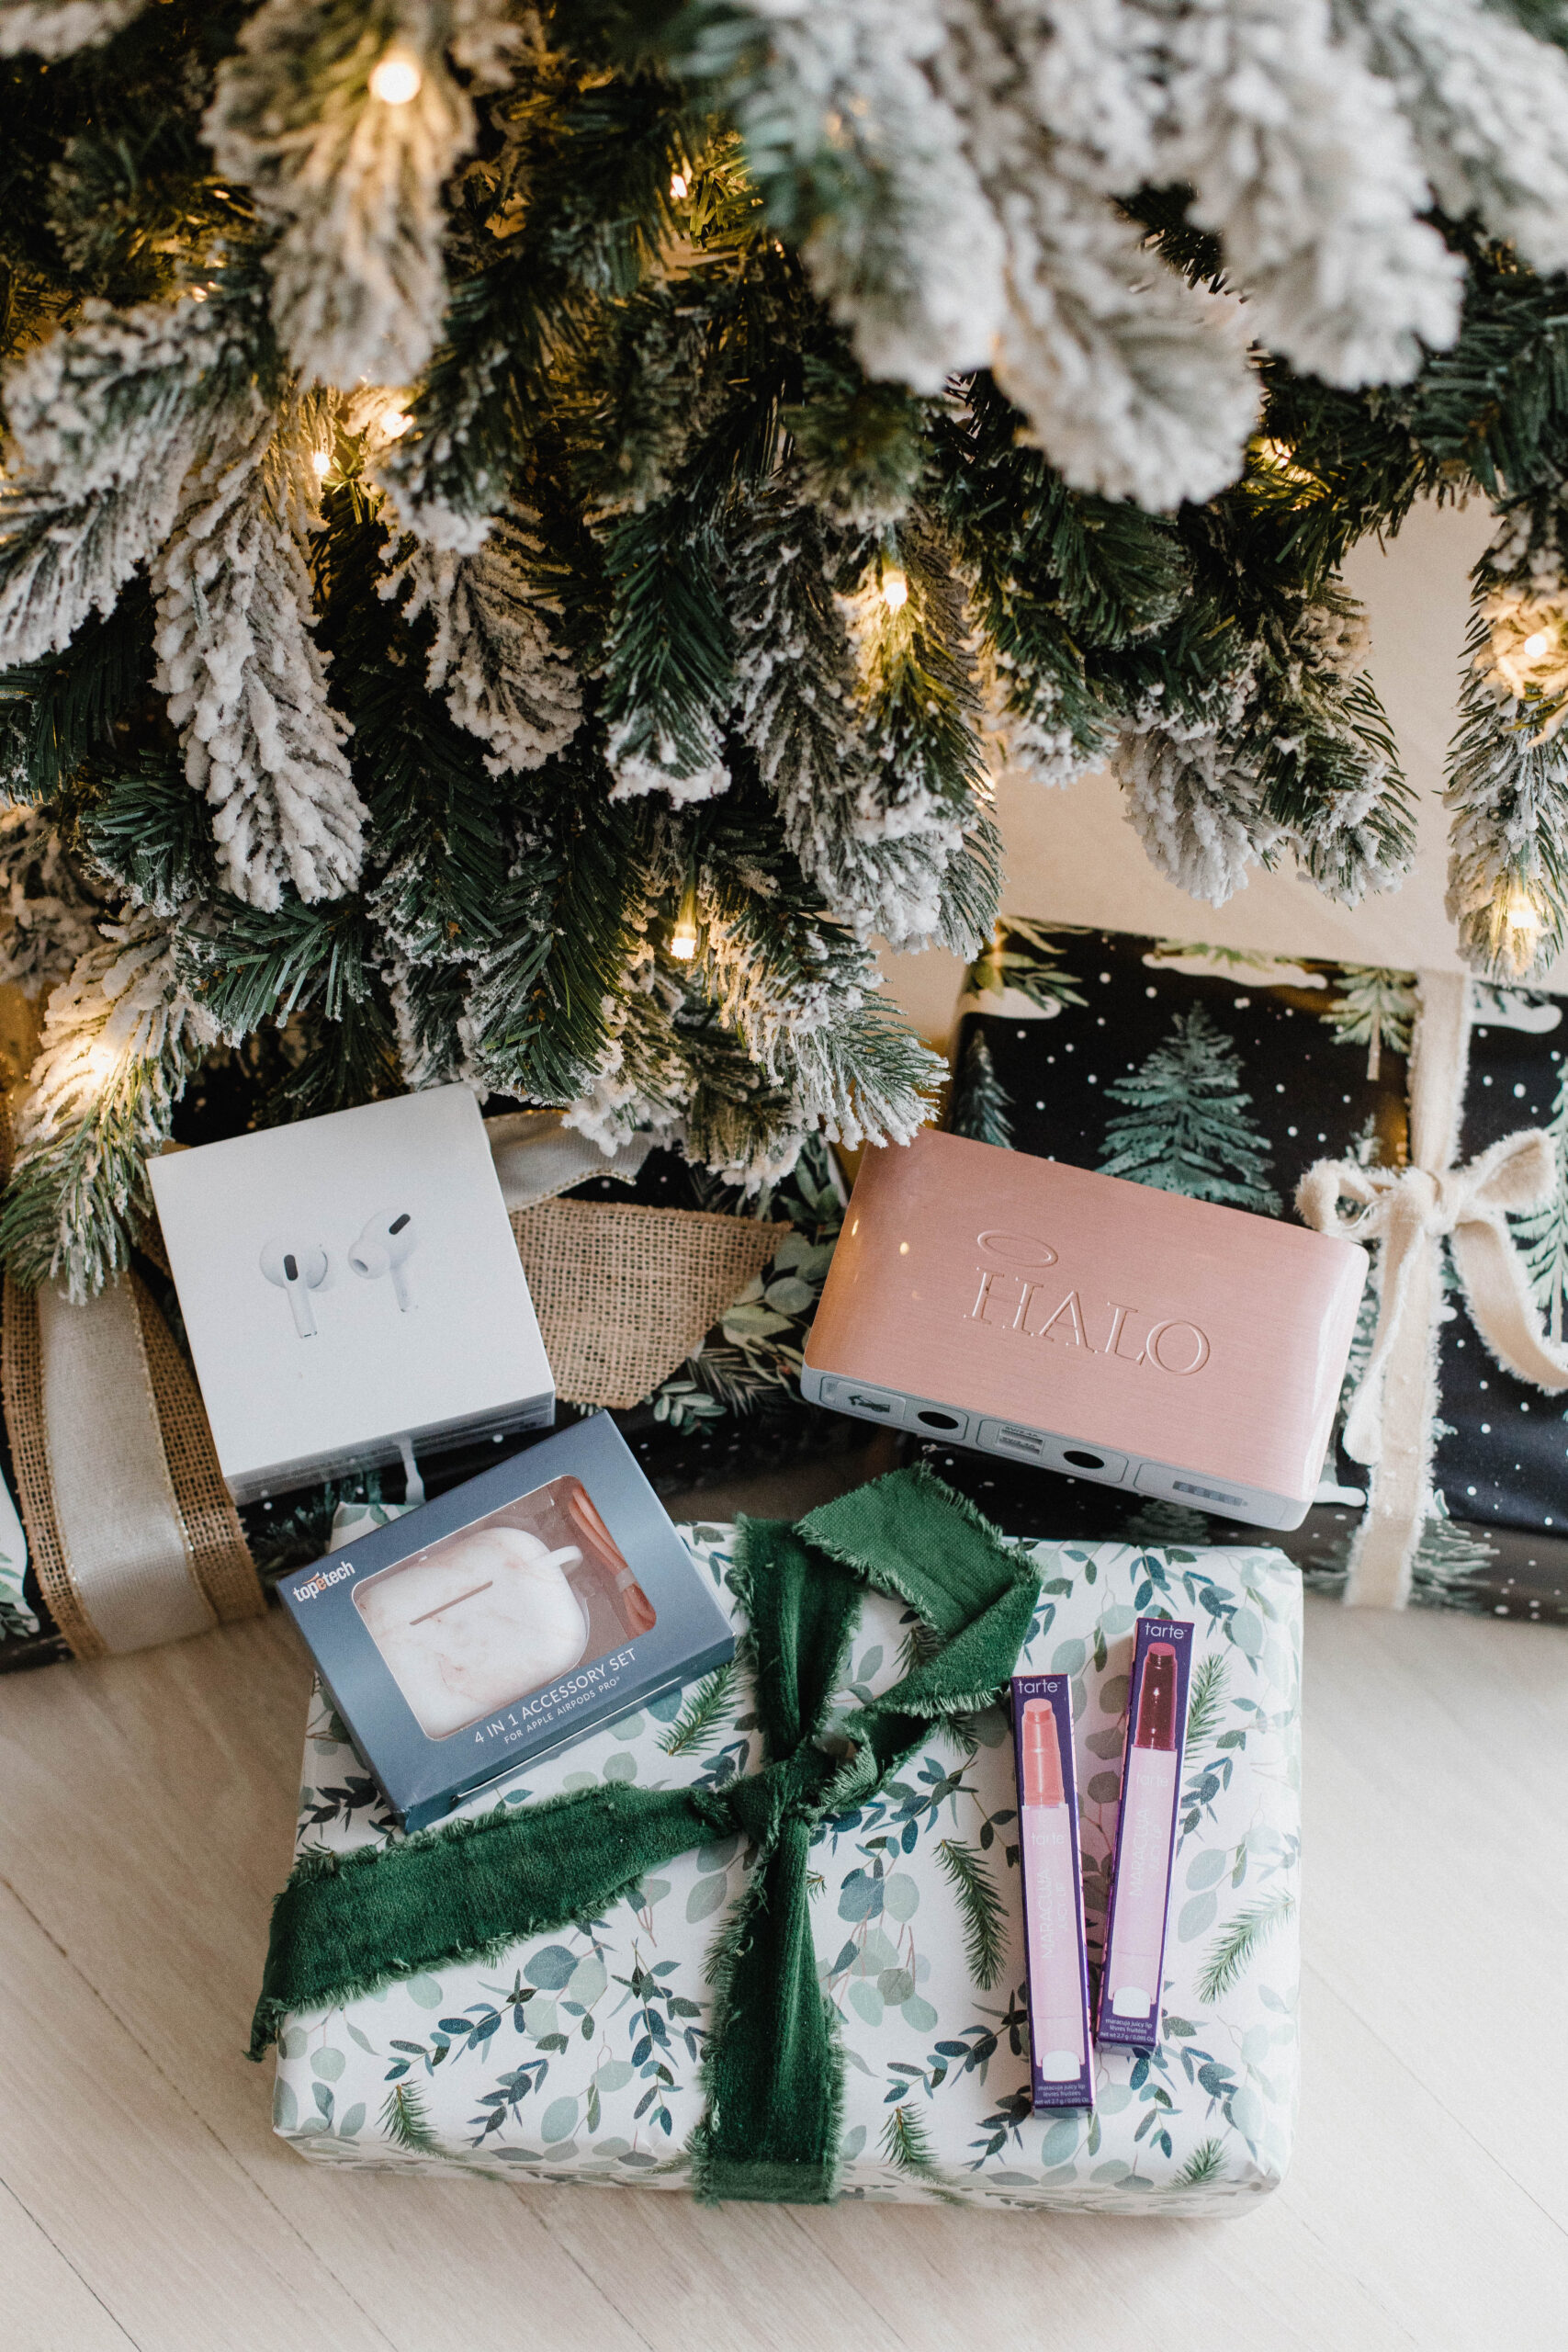 Connecticut life and style blogger Lauren McBride shares a QVC gift guide featuring a variety of items for everyone.